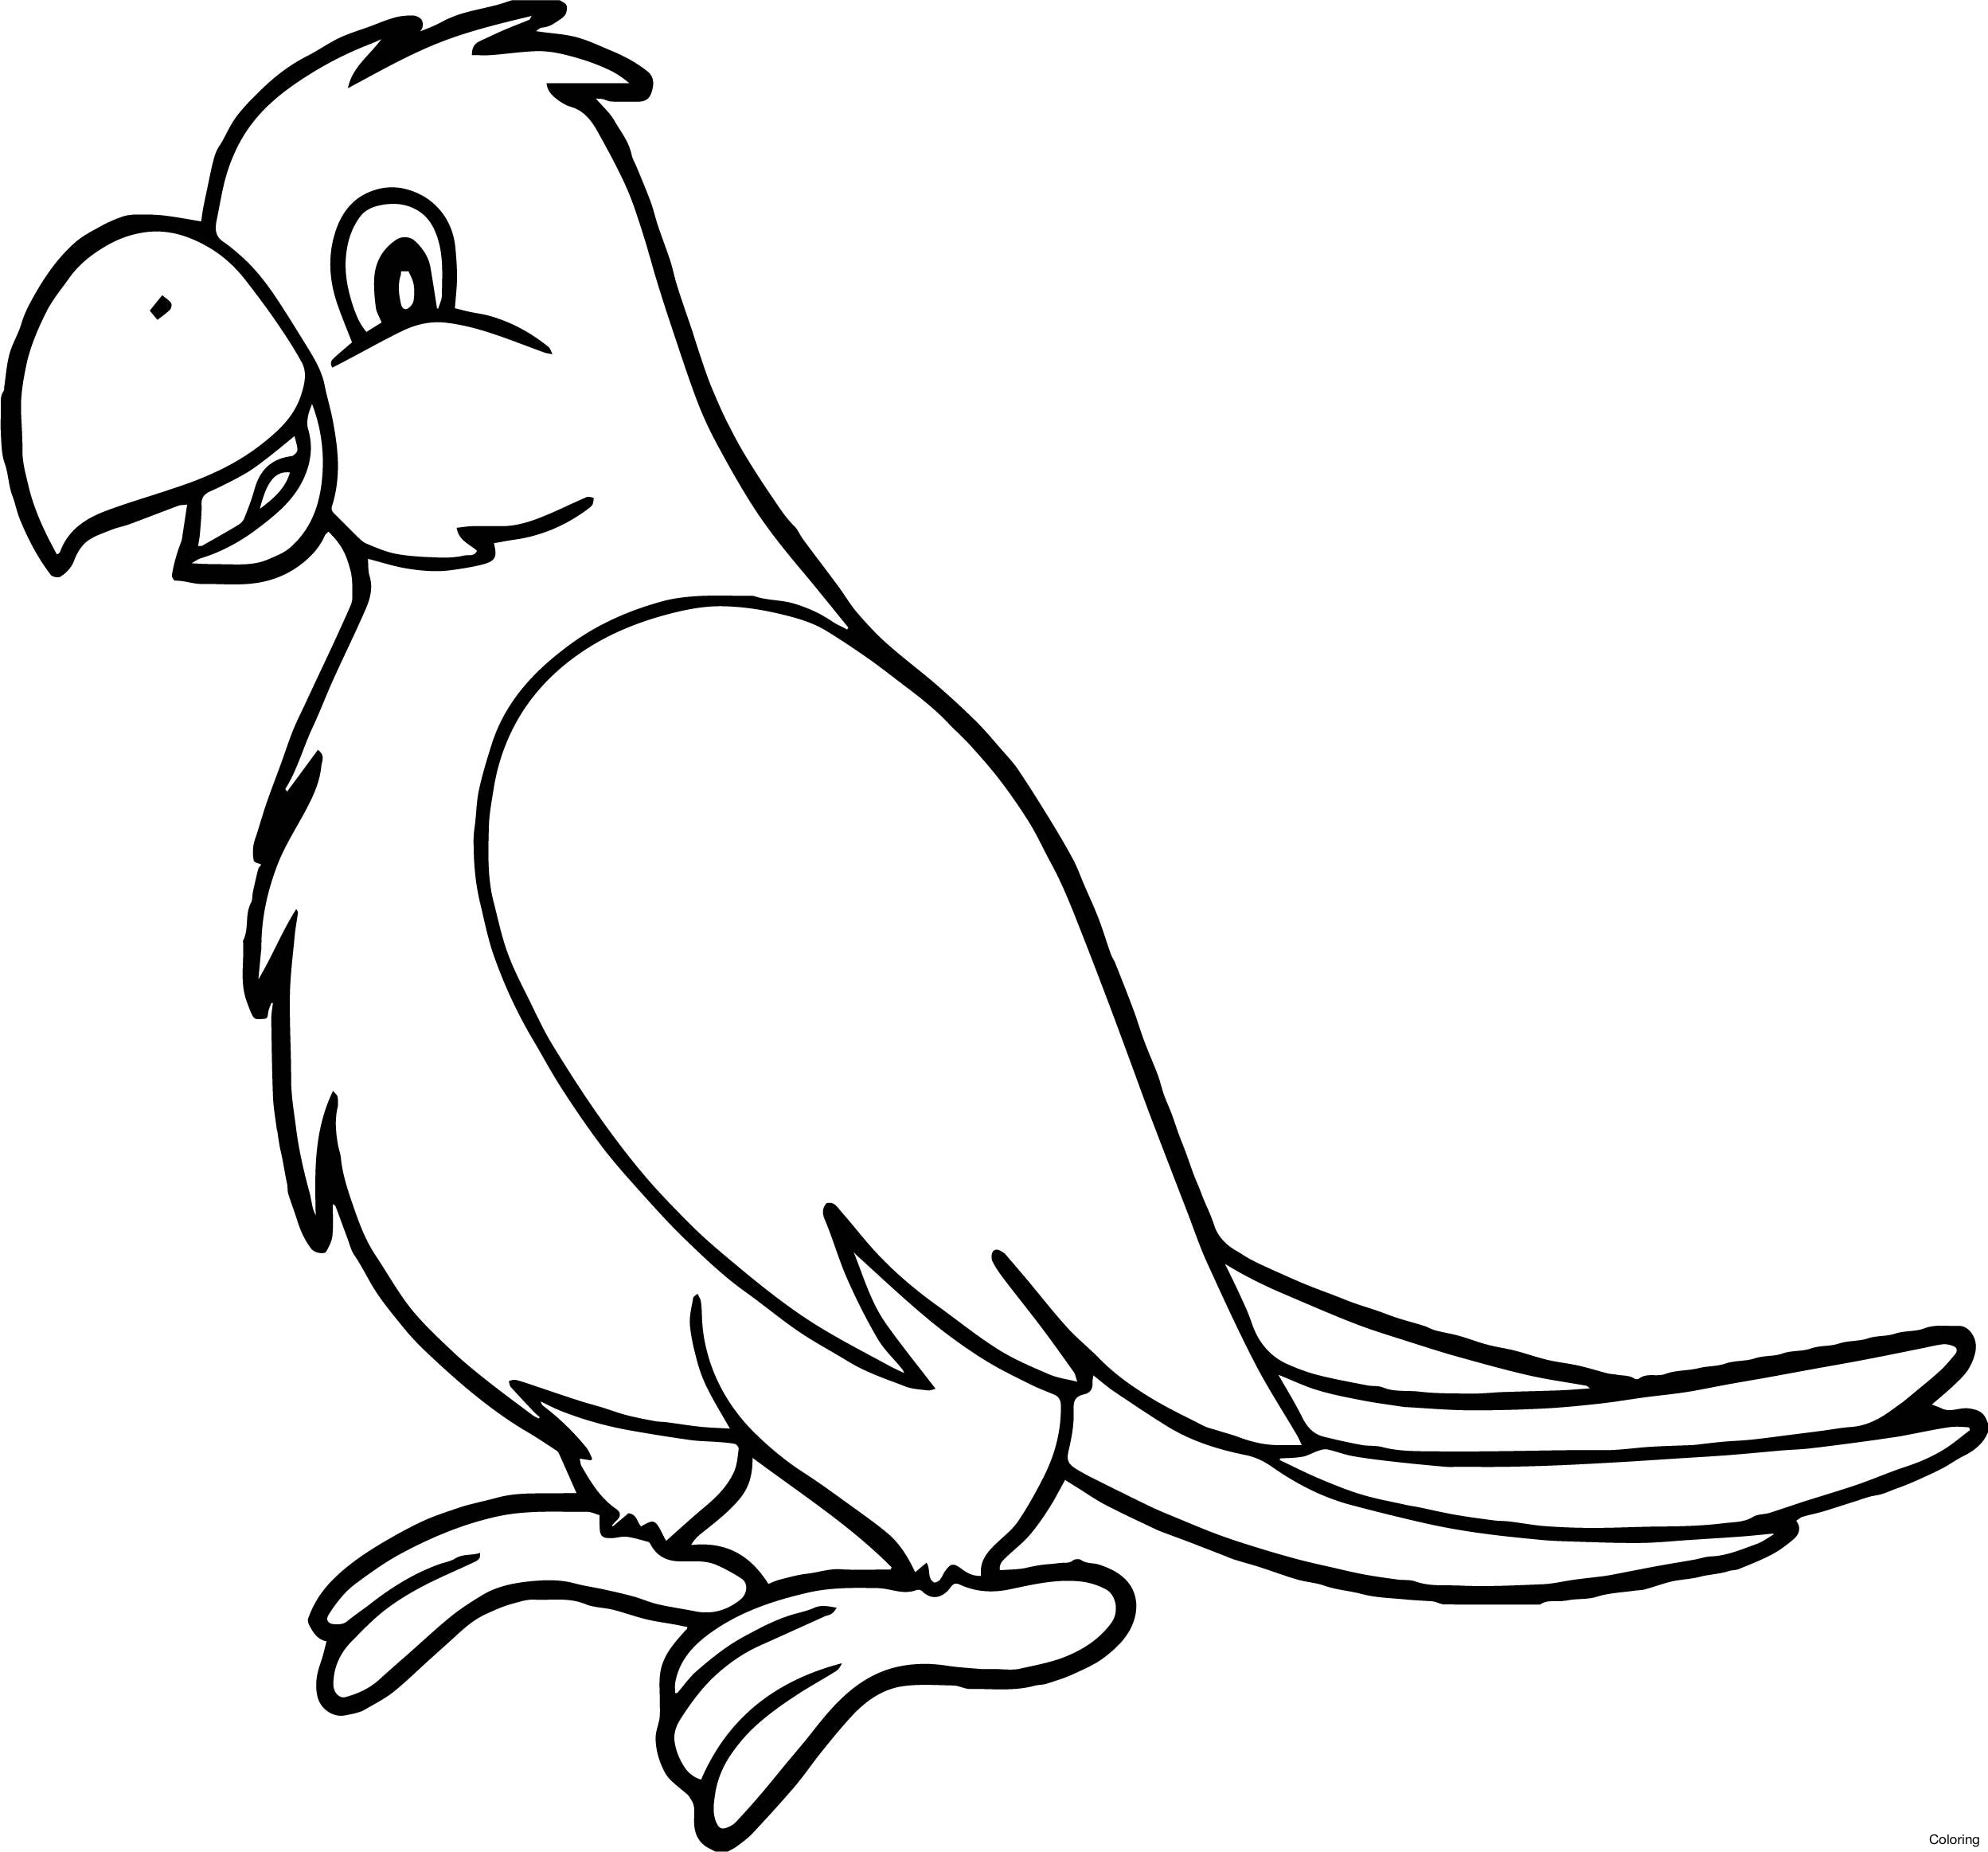 2497x2326 Blue Crowned Green Parrot Coloring Page Pages 8f Of Fish Online